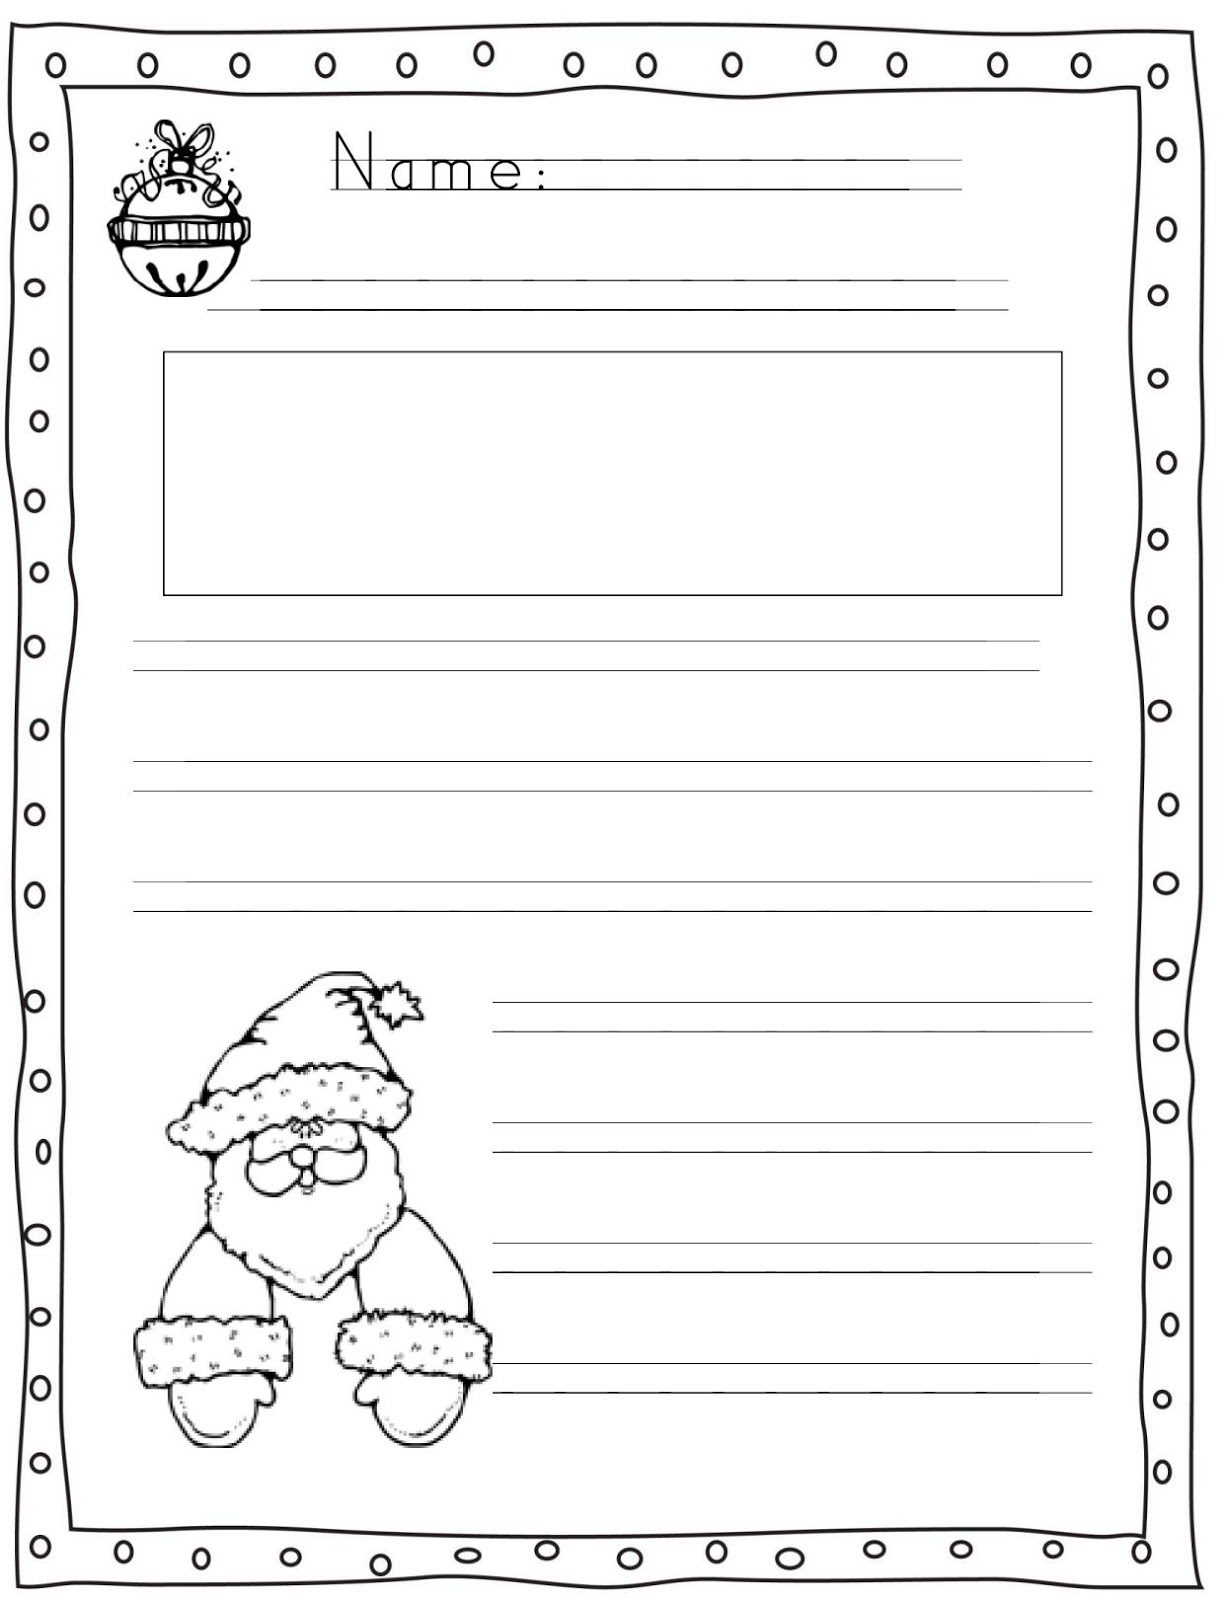 Handwriting without Tears Easy Teaching Tools – Handwriting Without Tears Worksheets